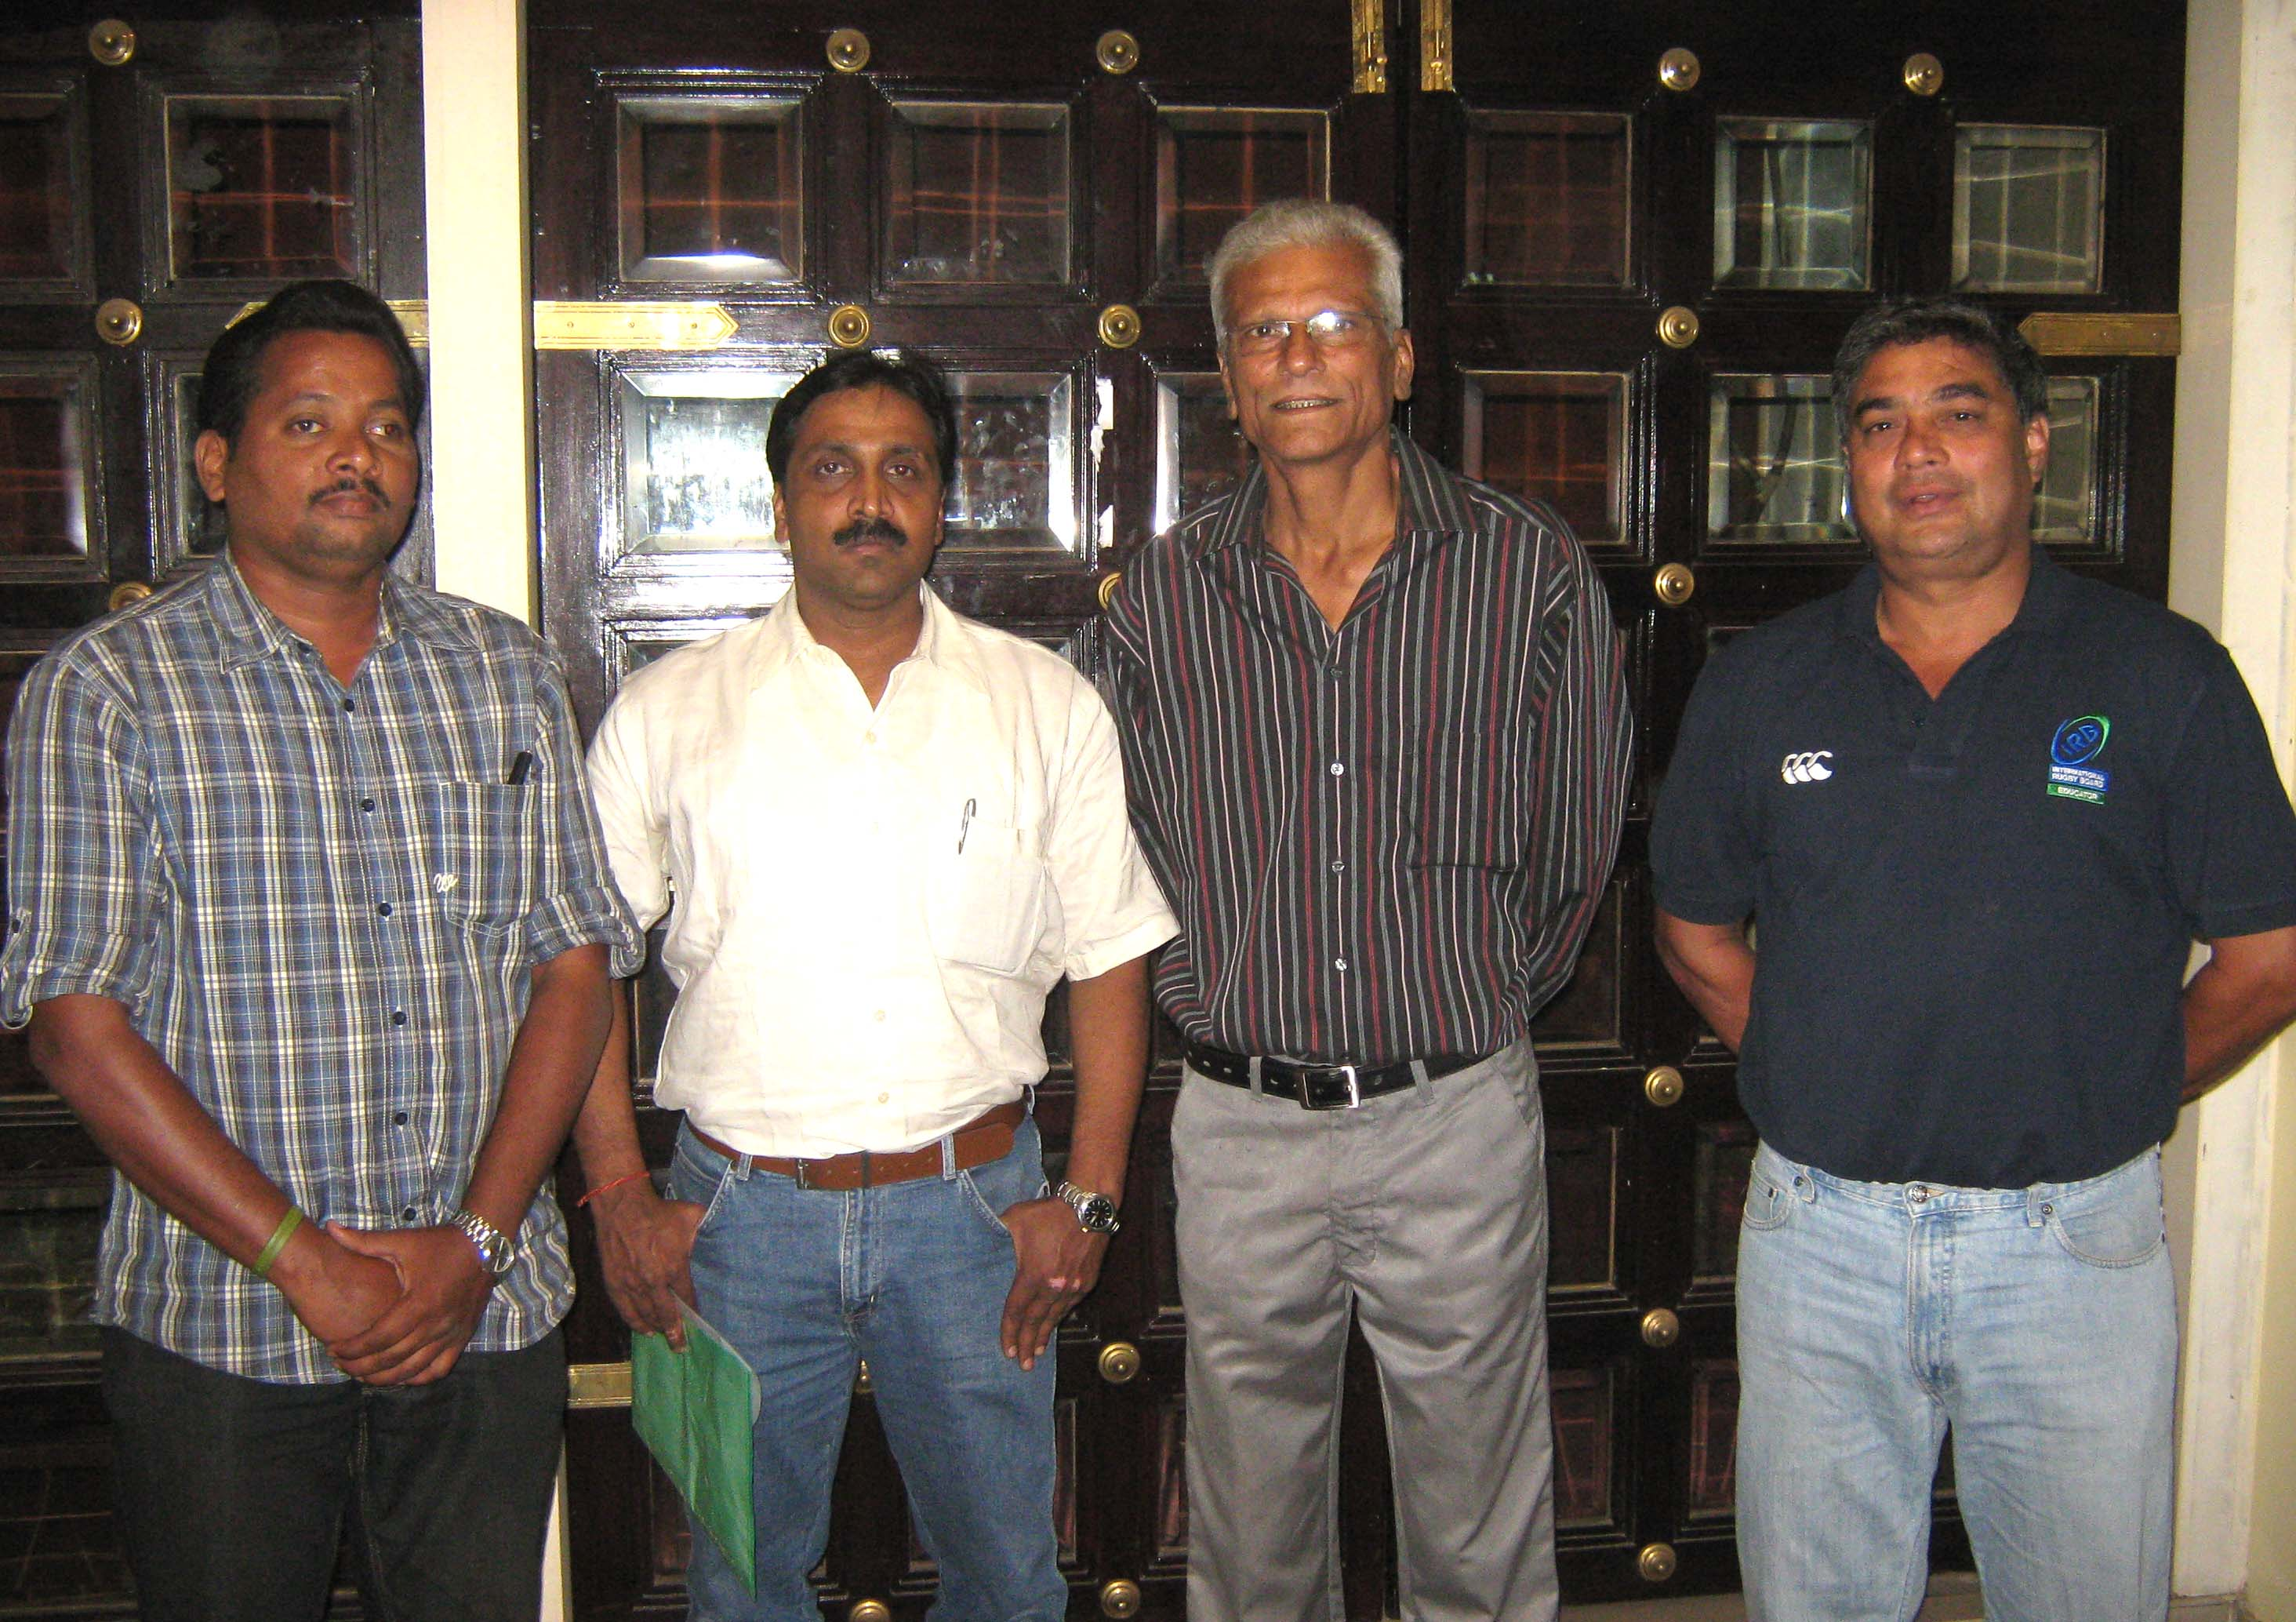 (Left to right) ORFA general secretary U K Mohanty, president Priyadarshi Mishra, IRFU development manager Nandu Chandavakar and IRB development officer Tony McLuskie at a media conference in Bhubaneswar on <b>Oct 22, 2009.